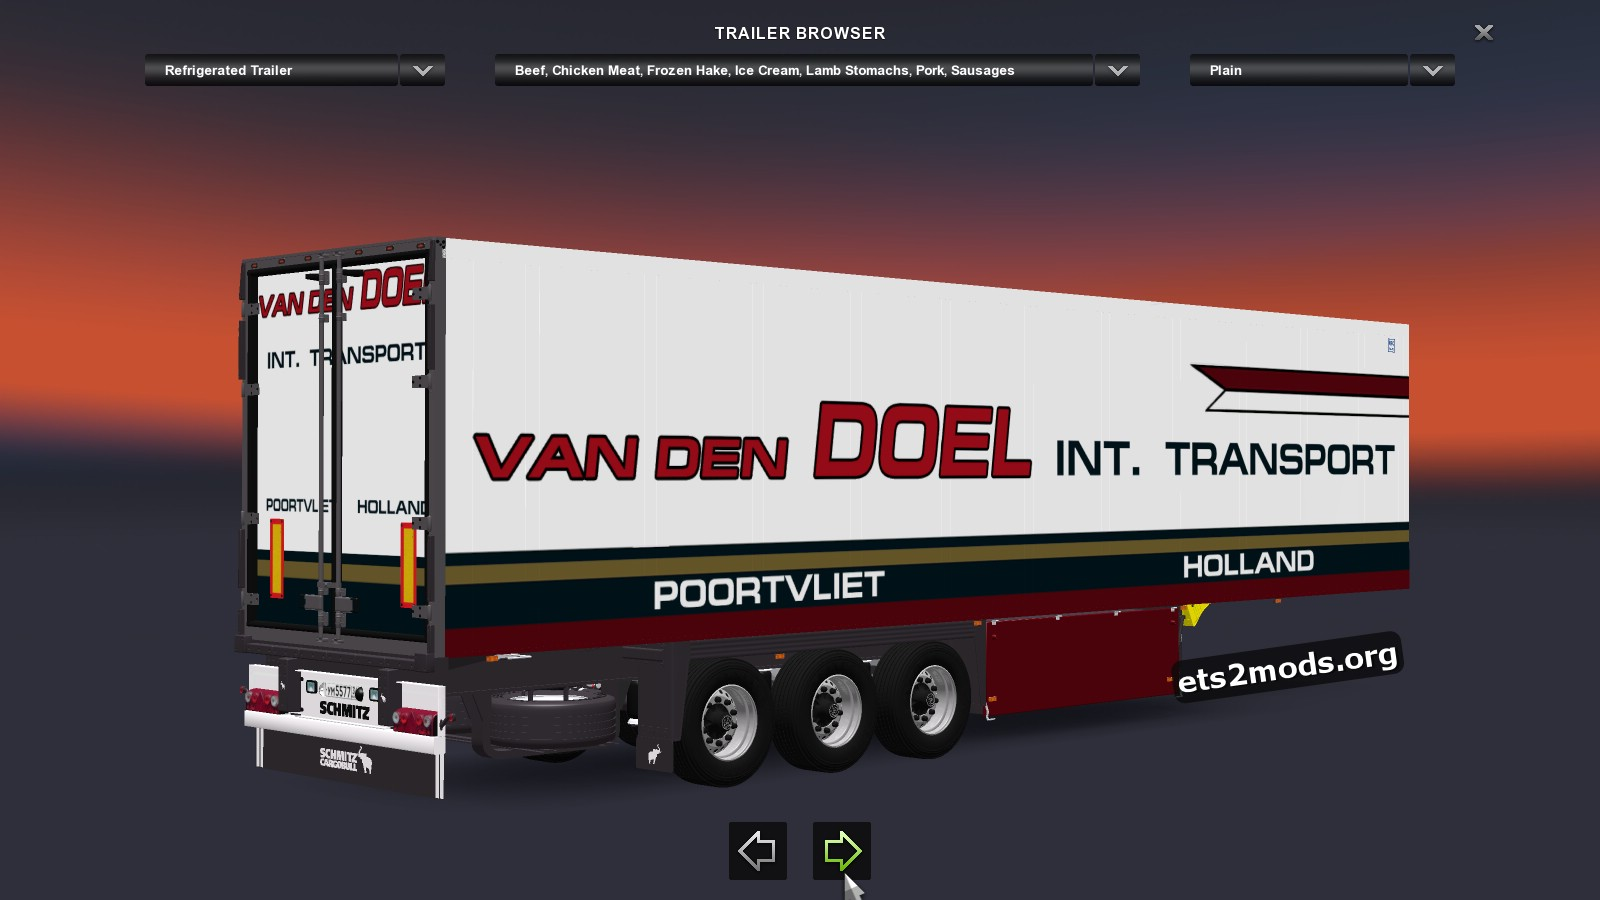 Van den Doel Int. Transport Trailer